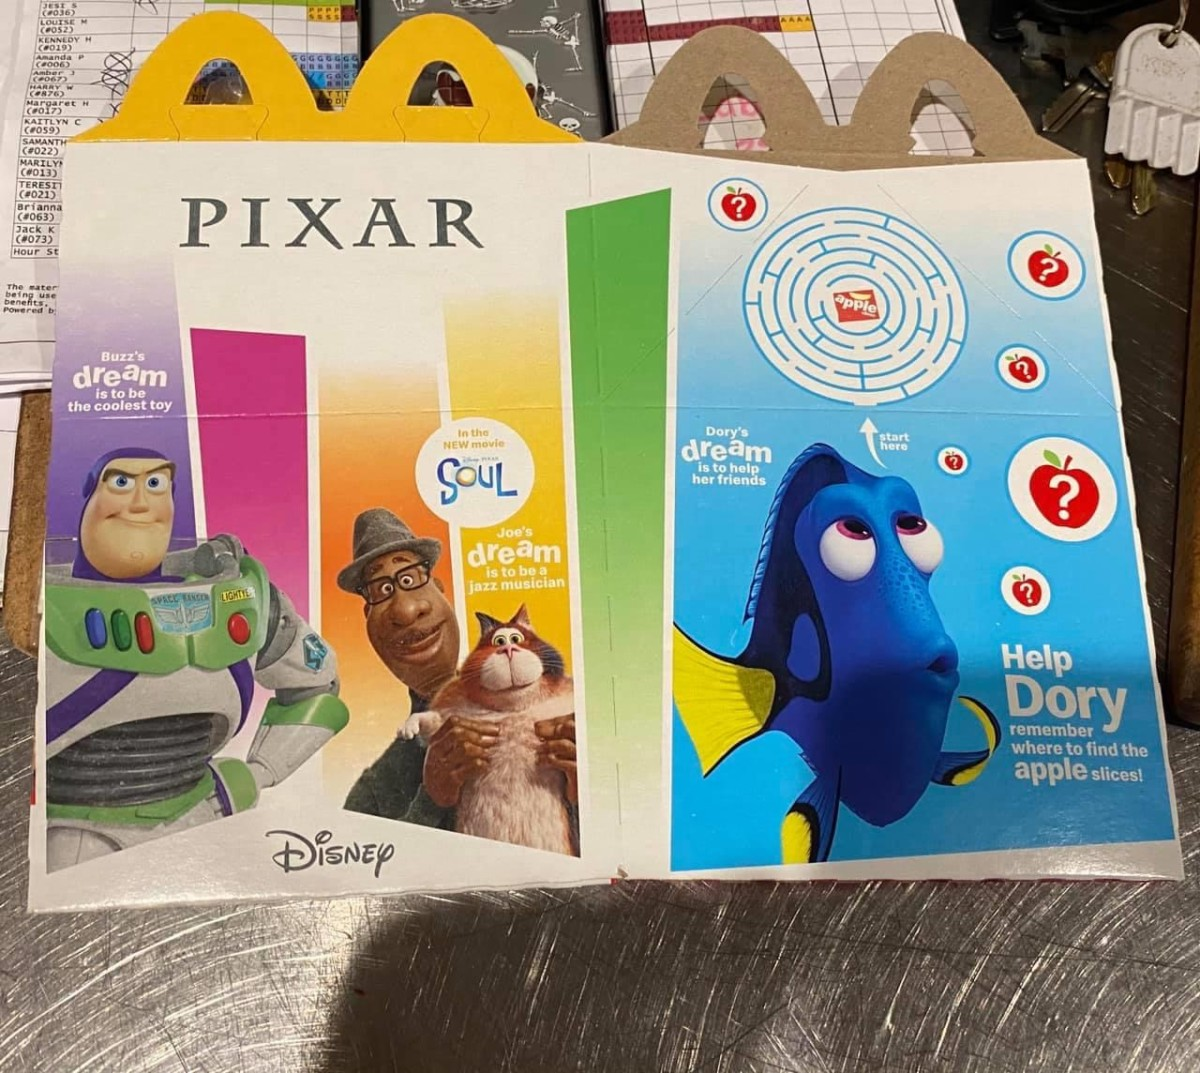 McDonald's Happy Meals Featuring Pixar Characters! 3